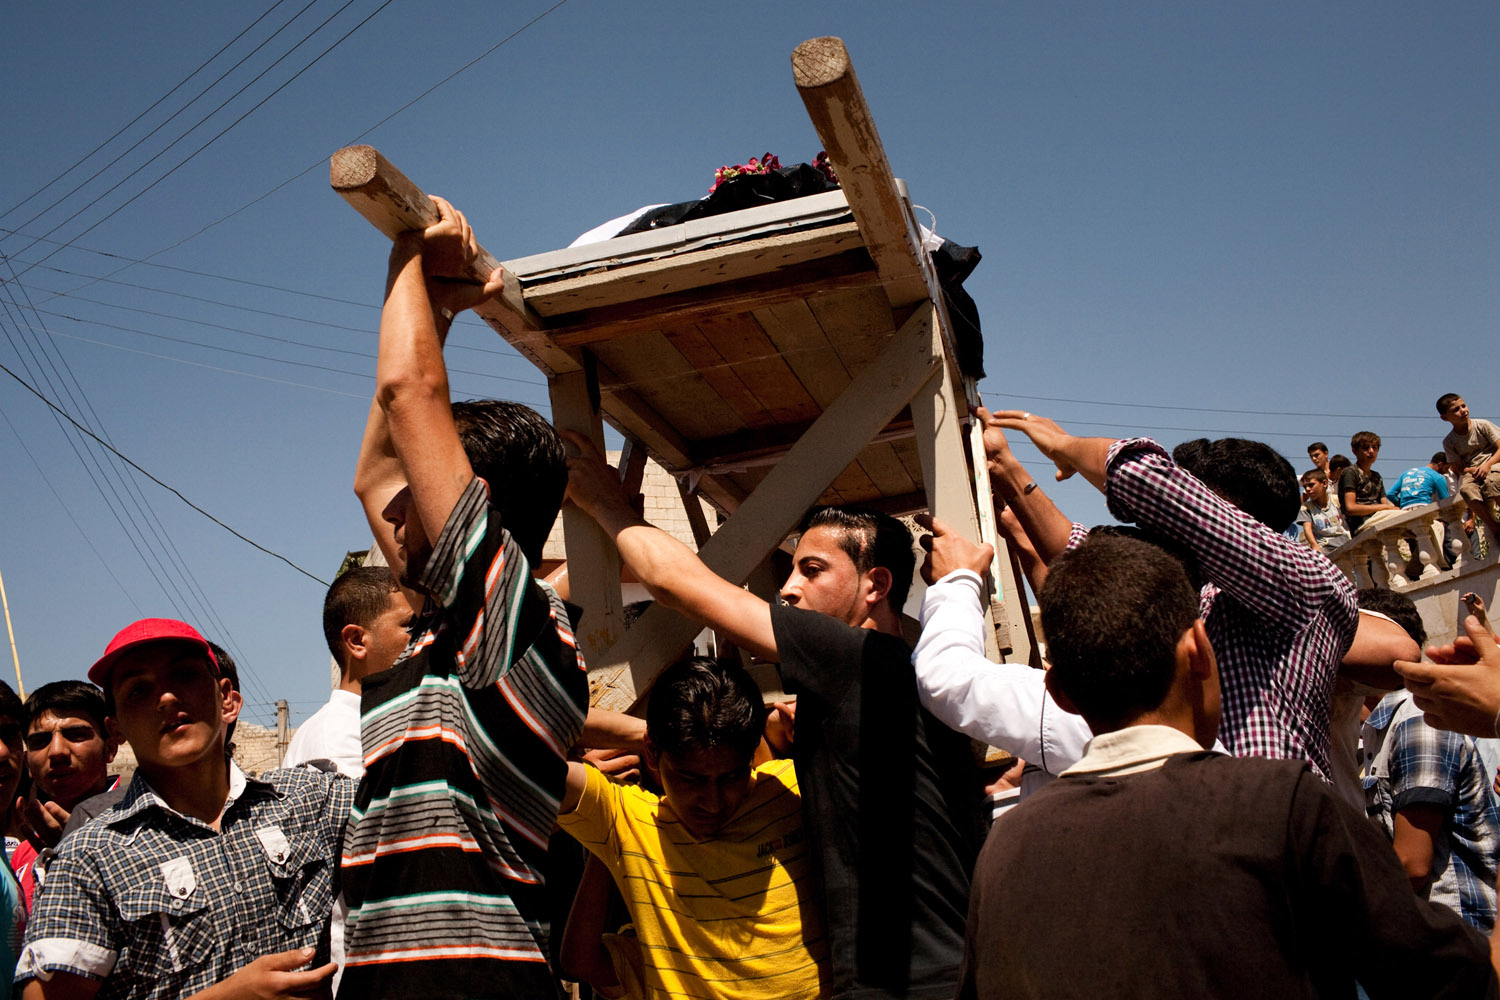 Demonstrators shout slogans as they carry the bodies of nine civilians killed the night before by mortars fired on the city of Maarat Al Noman by the Syrian Army on June 10, 2012. Estimates put the death toll between 20-30 people.